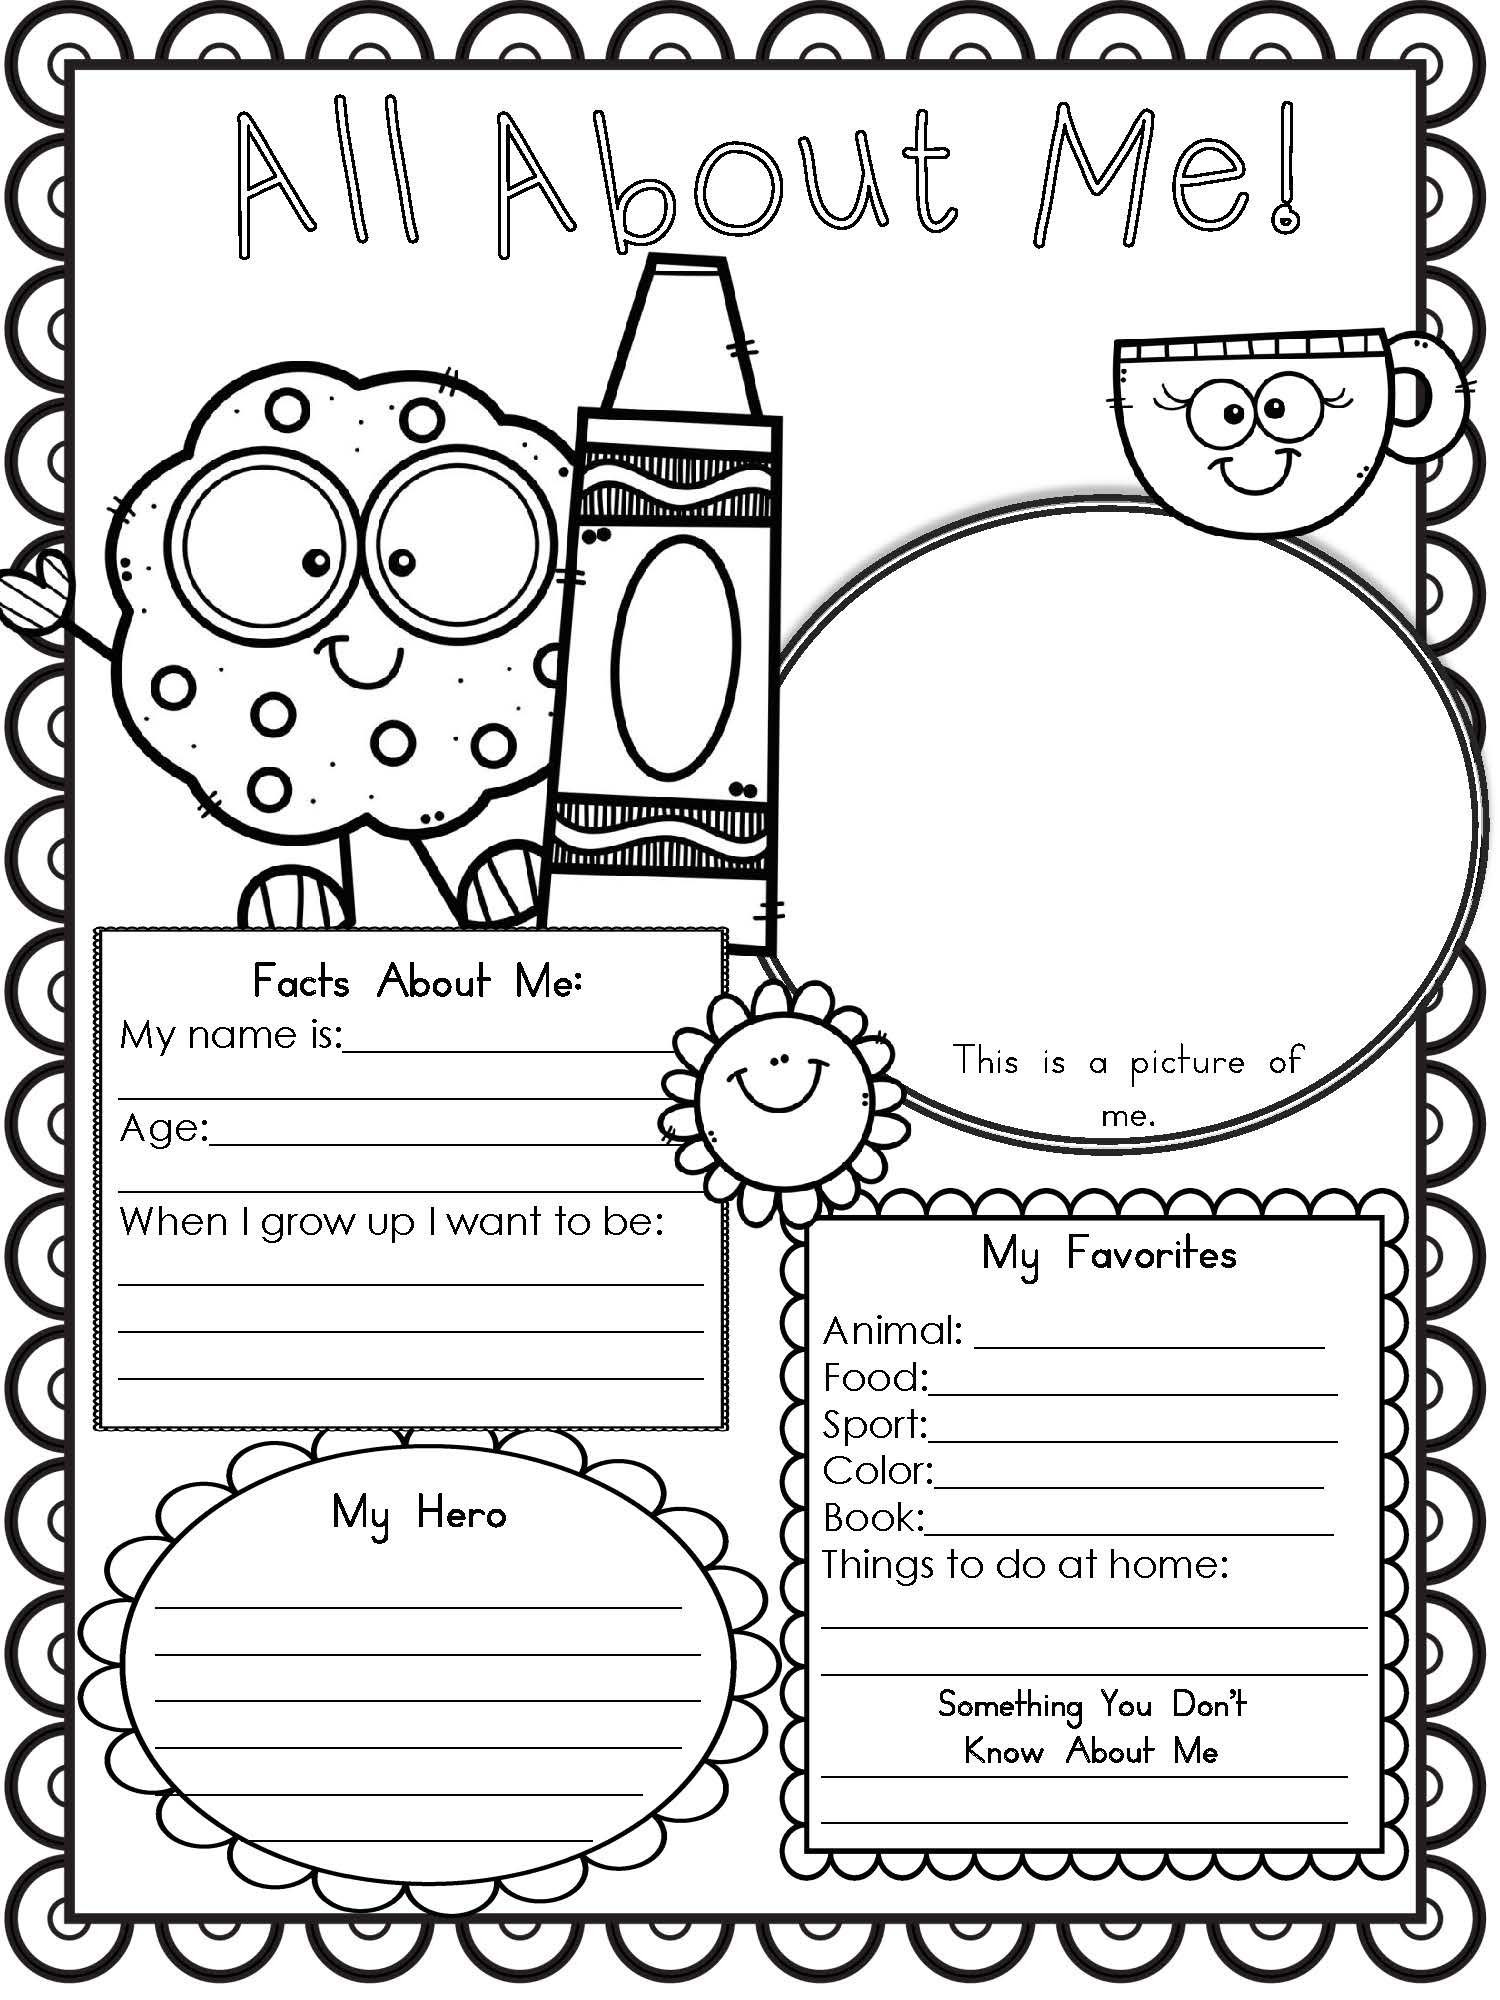 Math About Me Worksheet Math Worksheet Kindergarten Workbooks Printable Free